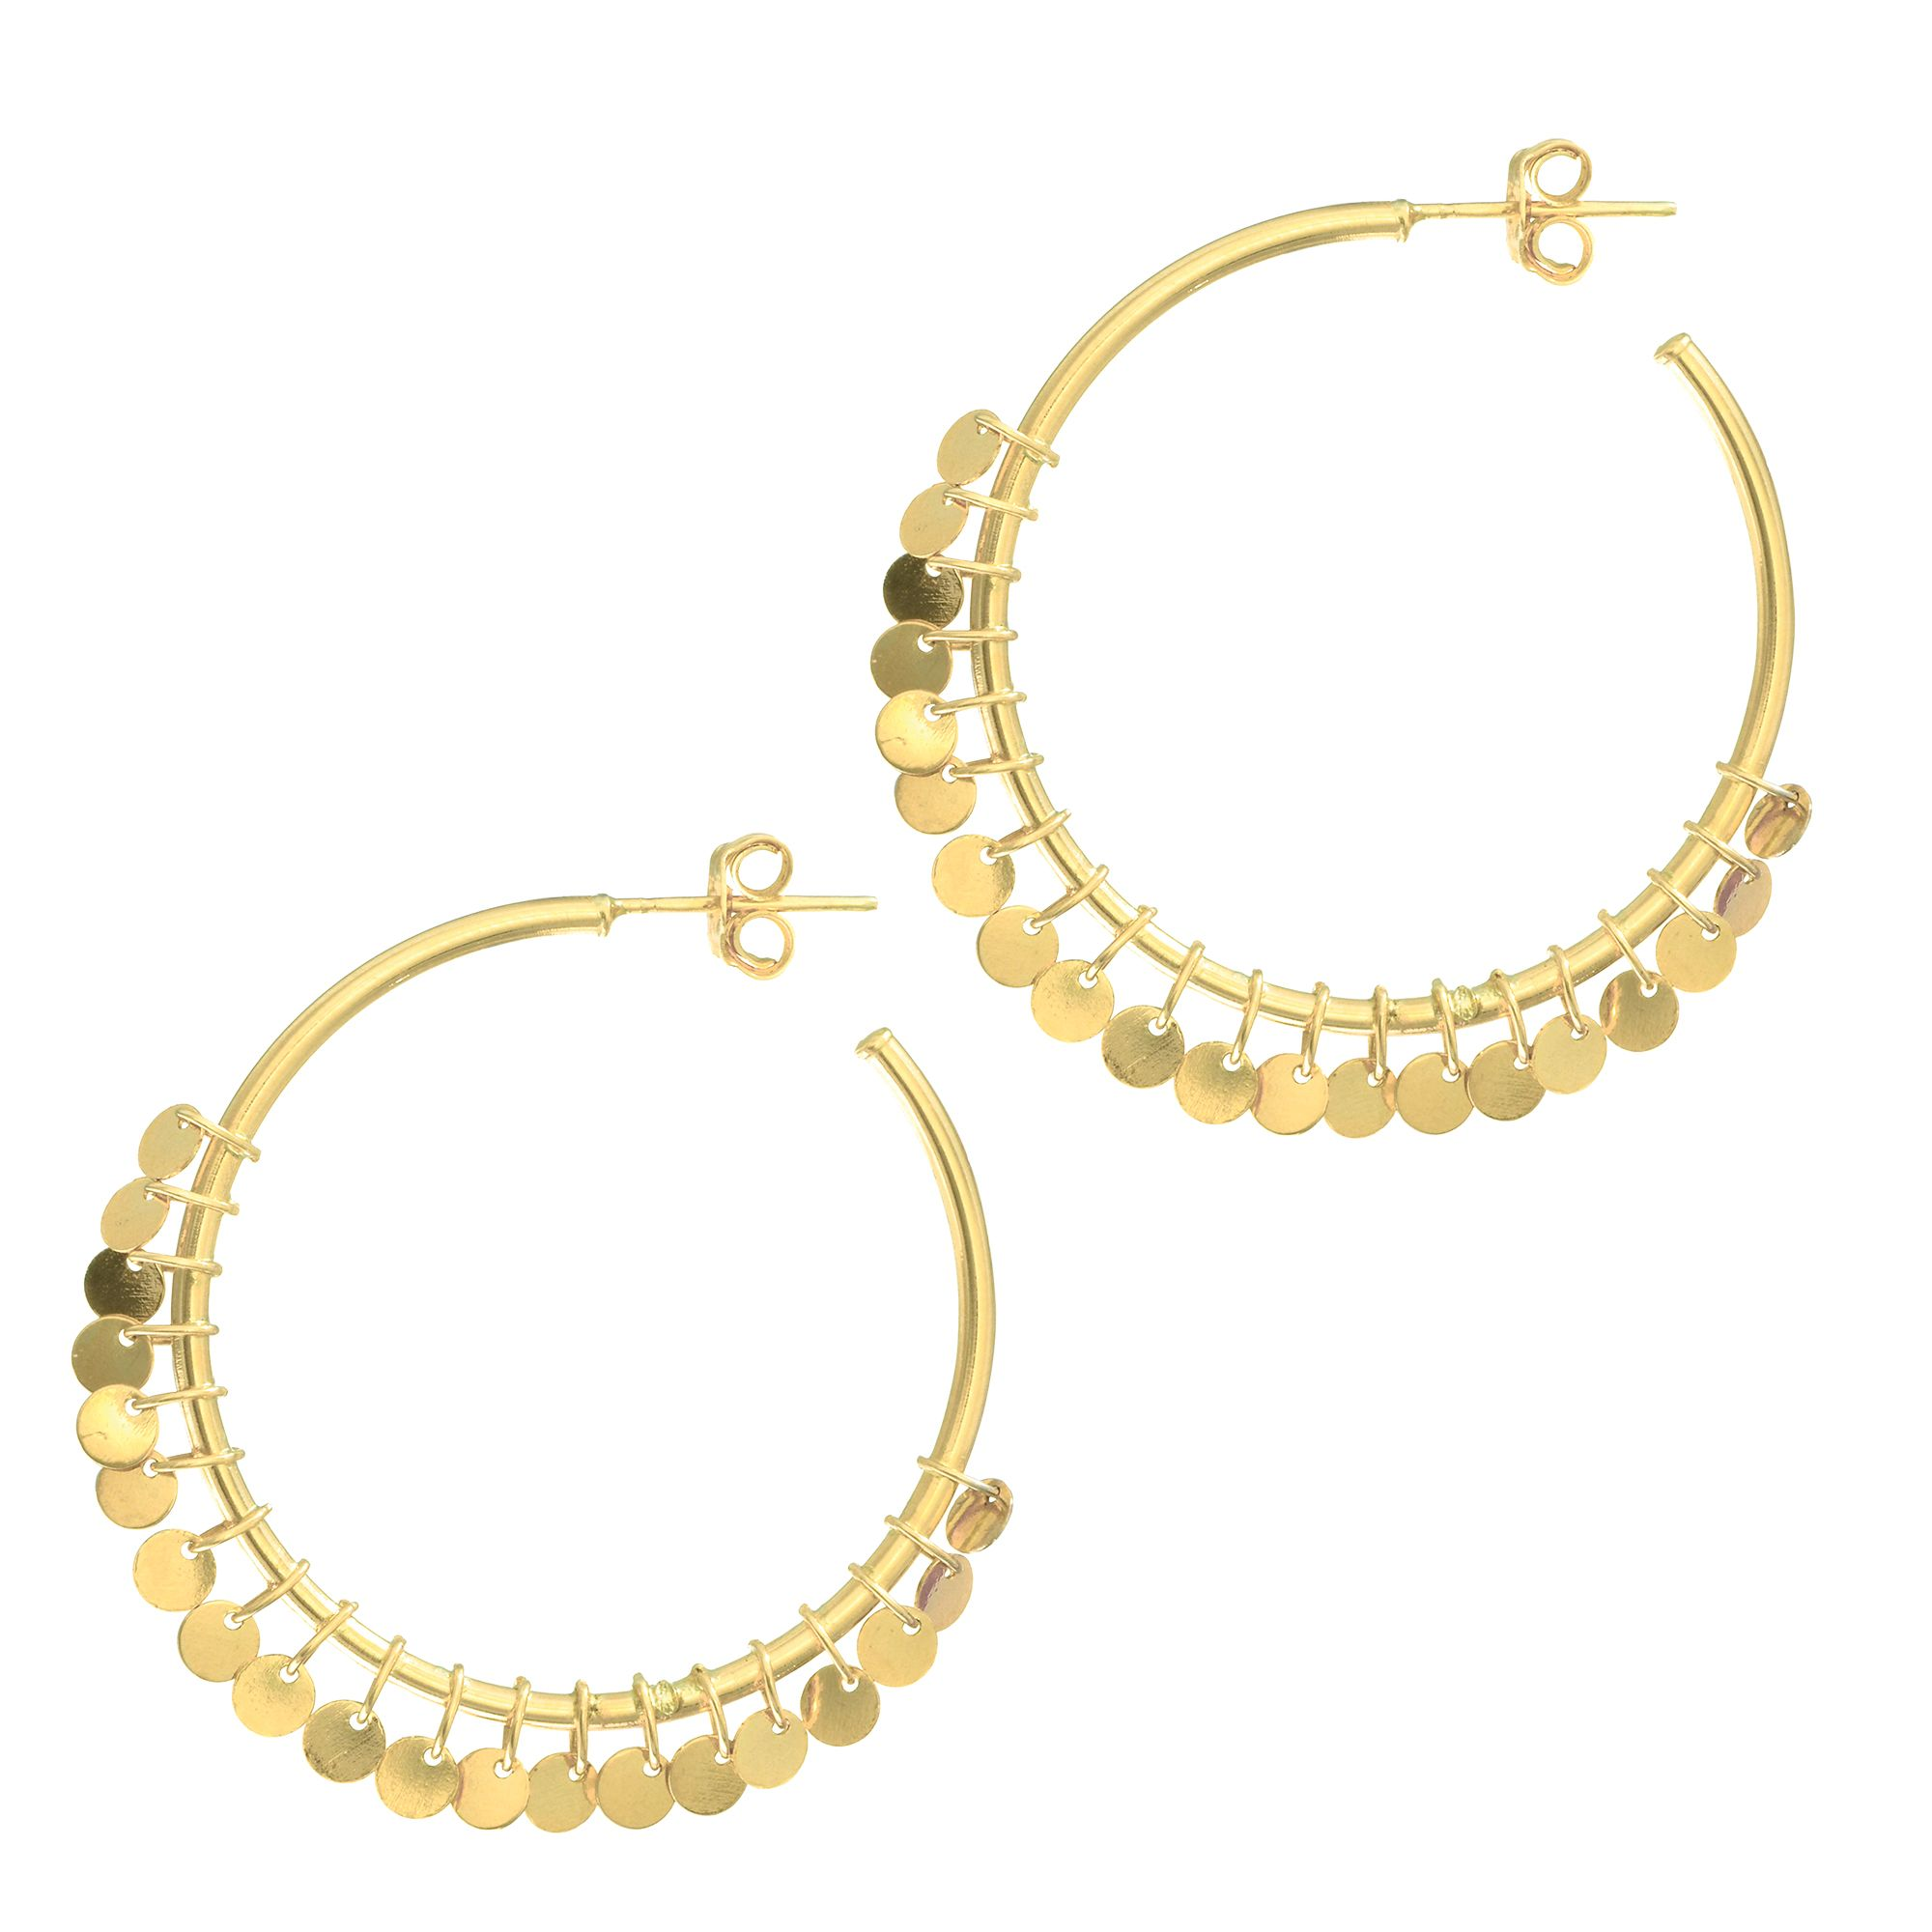 14 Karat Yellow Gold Dangling Disc Open Hoop Earrings